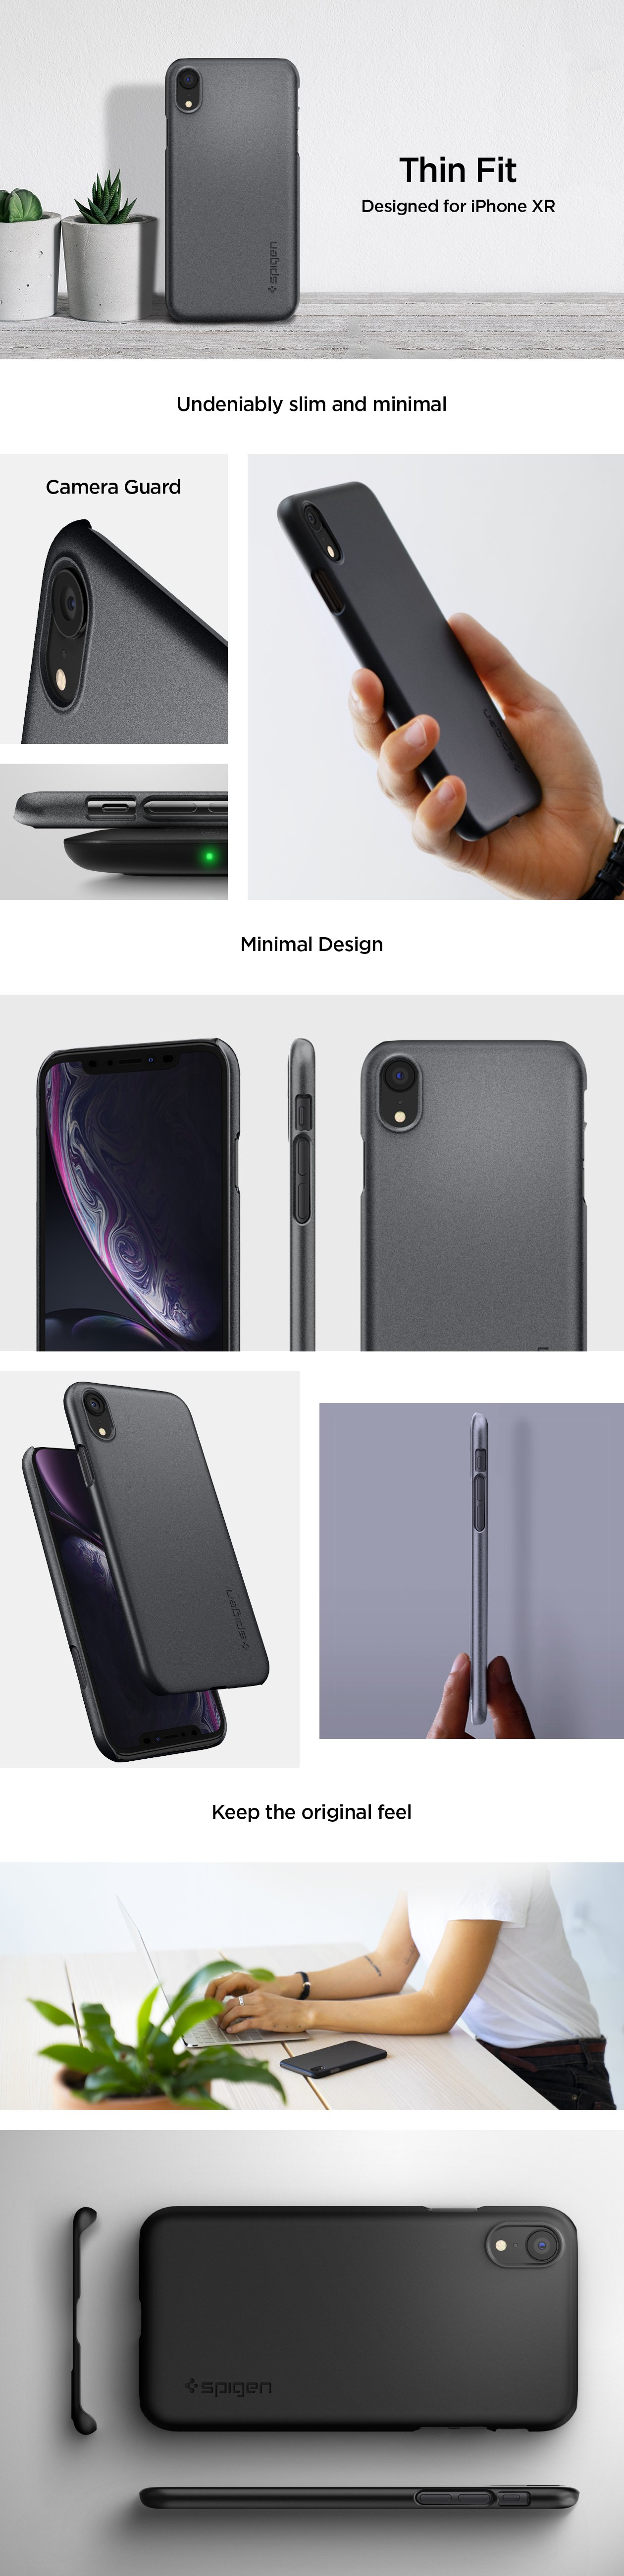 Carcasa Spigen iPhone XR Thin Fit, Gohub